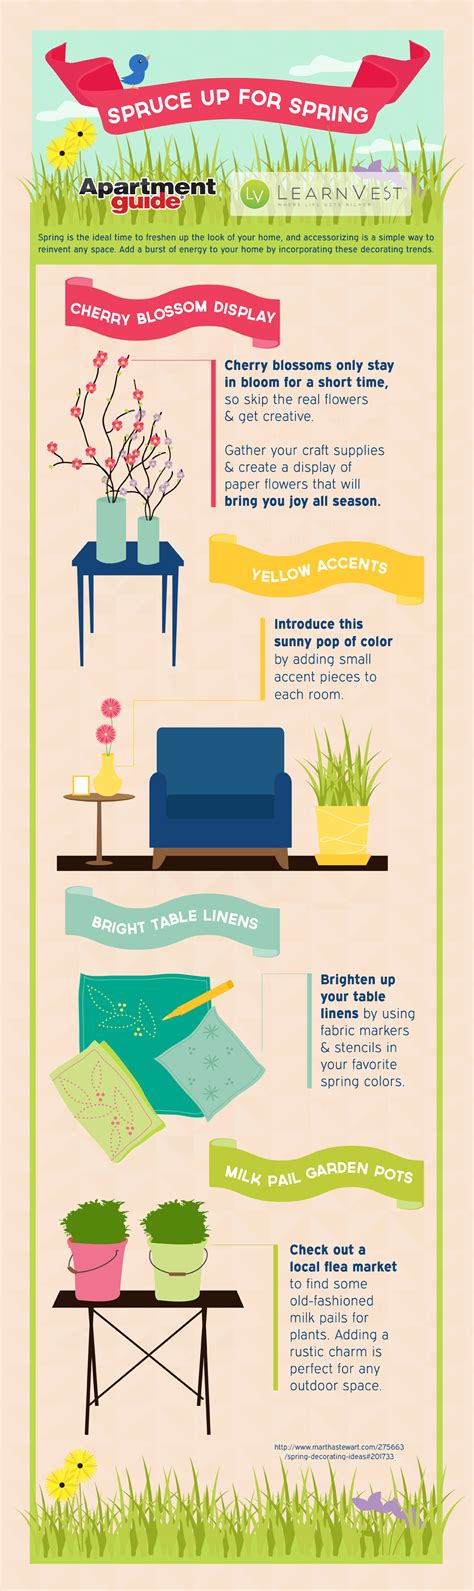 spruce up for freshen up your home infographic